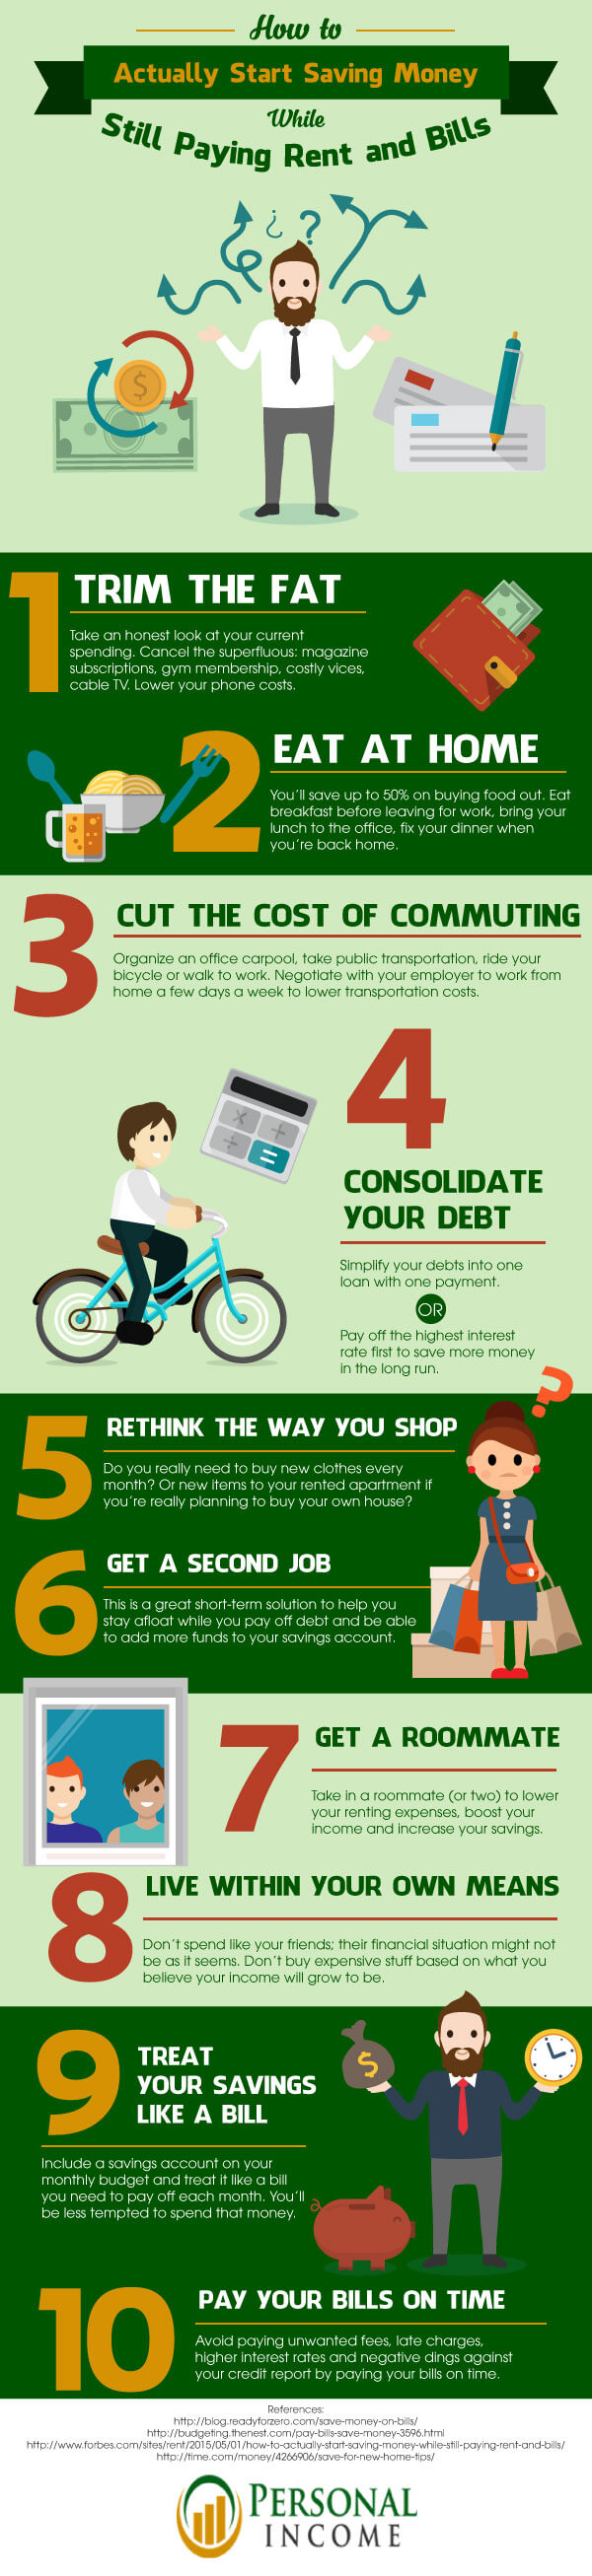 Infographic-How-to-Actually-Start-Saving-Money